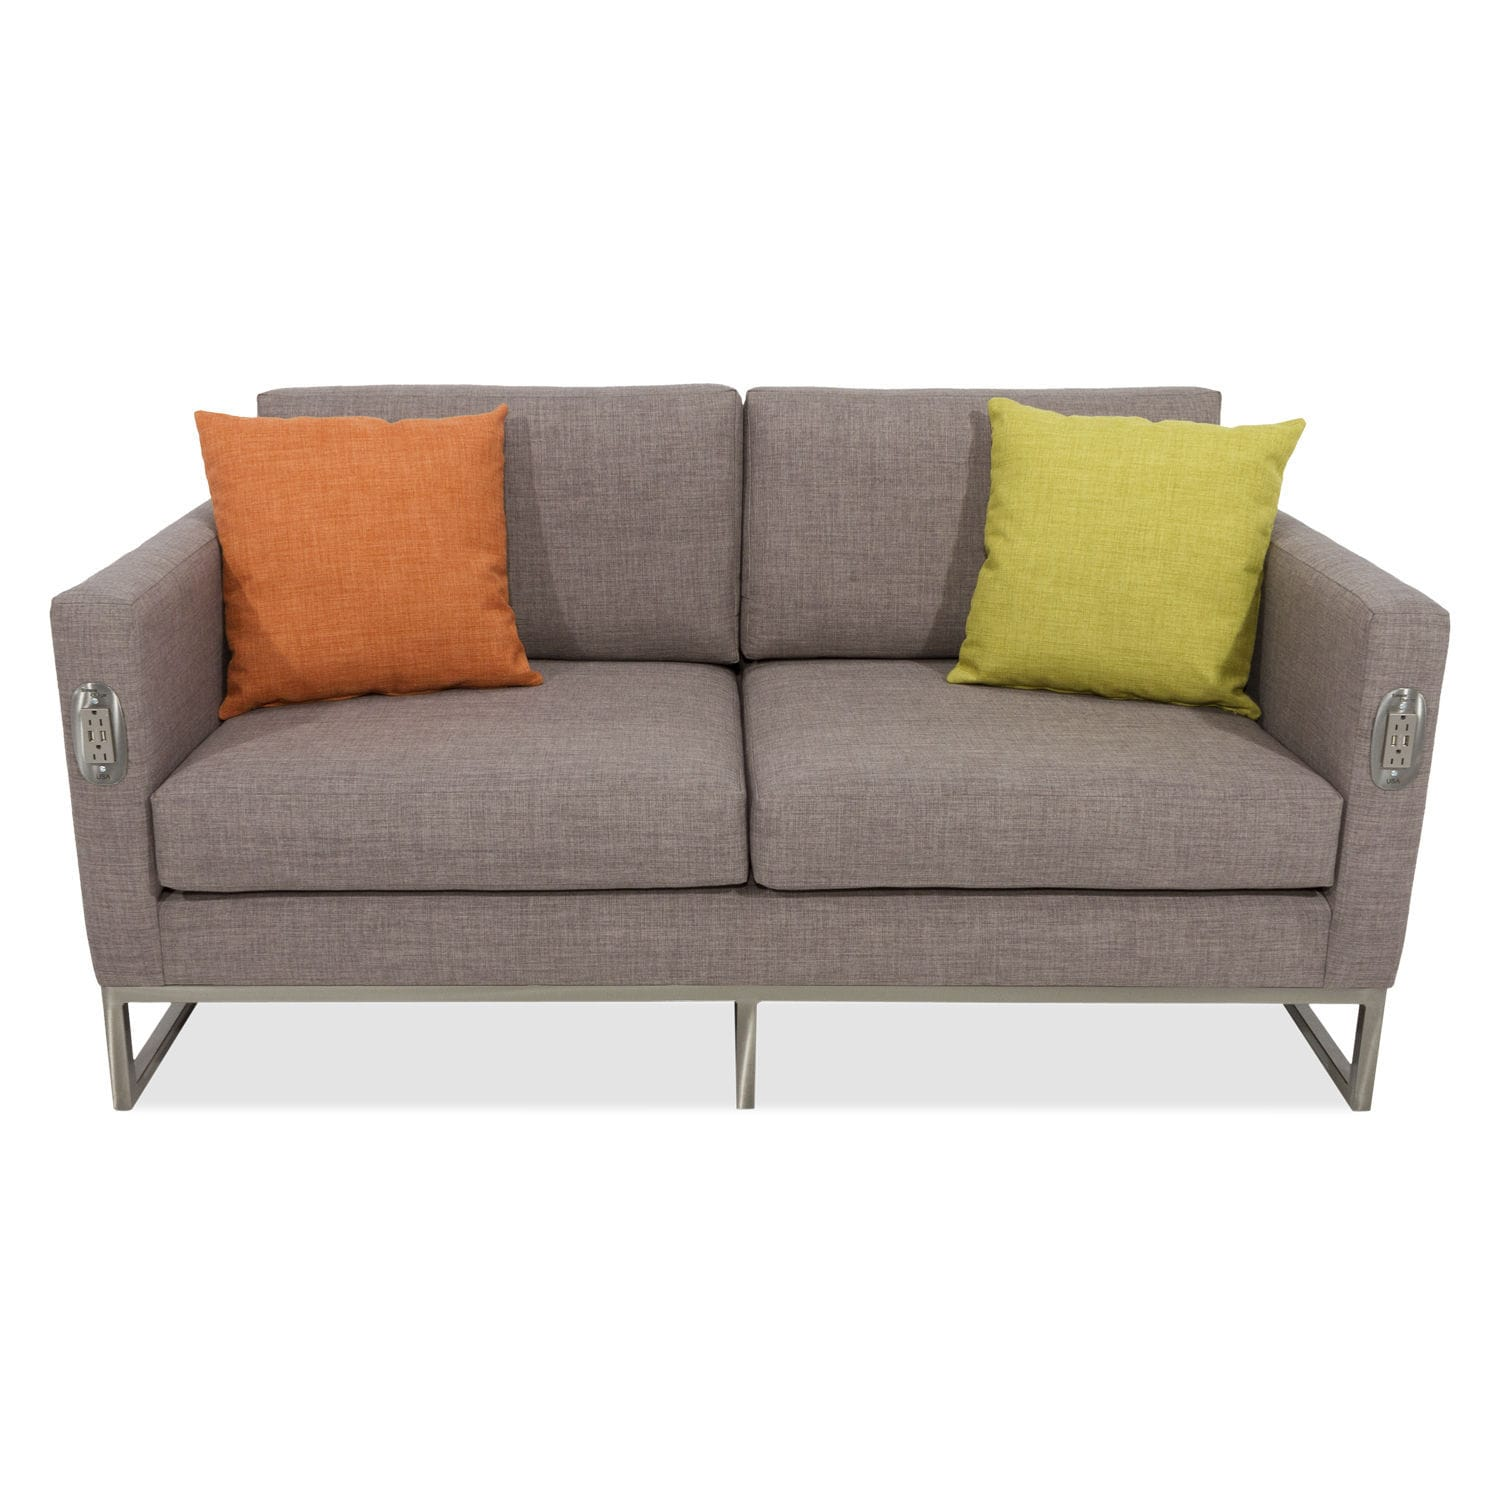 Modernes Sofa / Stoff / Objektmöbel / 2 Plätze   SIMPLE CHARGE LOVESEAT